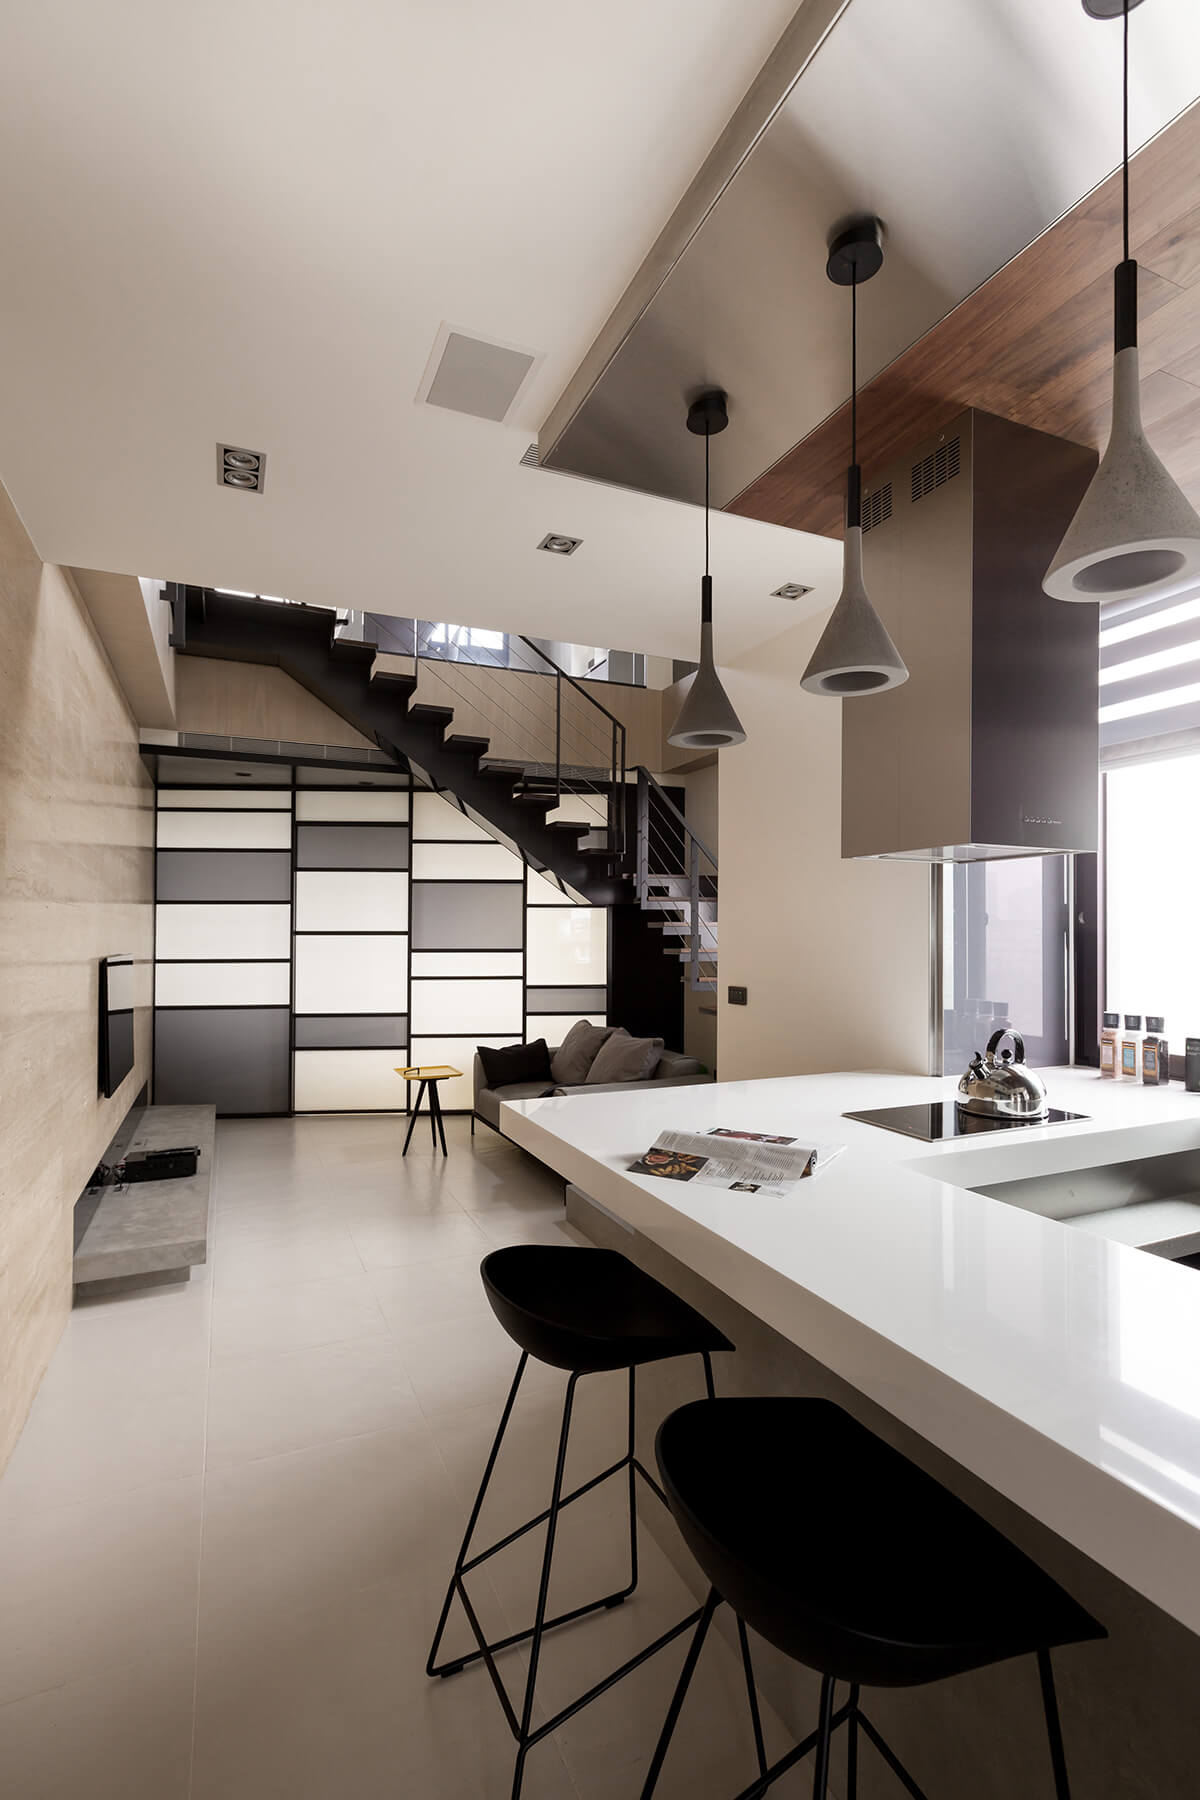 Pendant lights hang above the dining-space countertop at right, while we see a cozy living room space in the distance, standing beneath a checkered panel wall and set of open-design stairs.